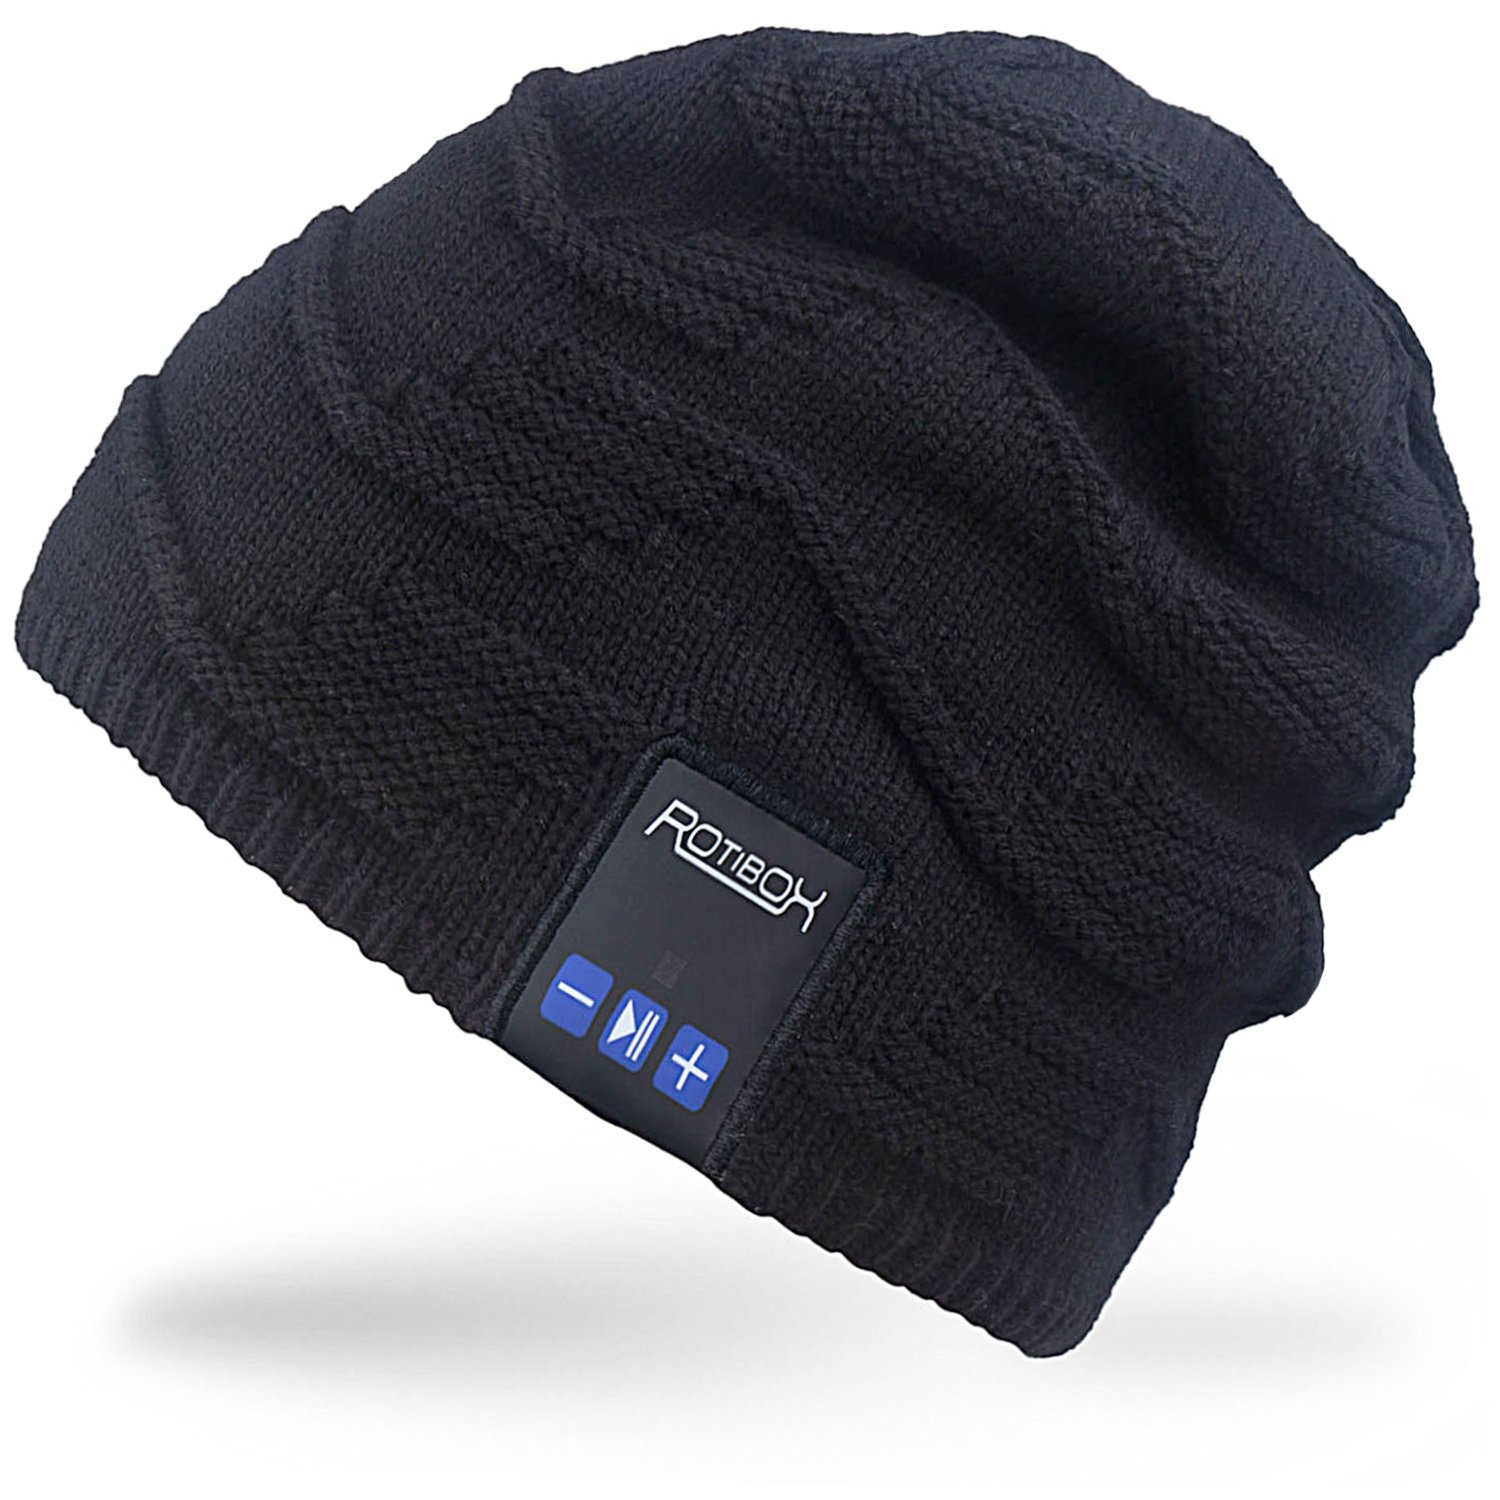 Rotibox Bluetooth Beanie Hat Winter Stylish Cap with Wireless Bluetooth Headphone Headset Earphone Music Audio Hands-free Phone Call for Outdoor Sports Fitness Exercise Workout Skiing Snowboard